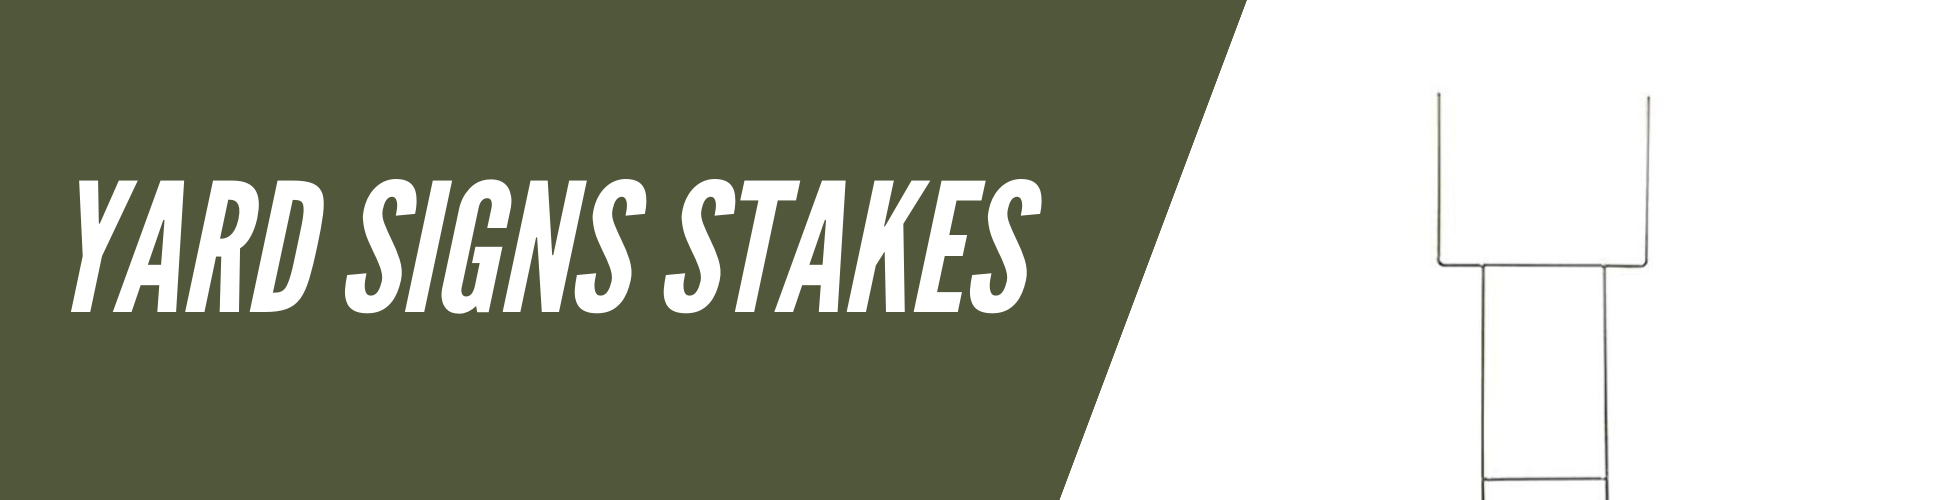 yard-signs-stakes-banner-v3.png